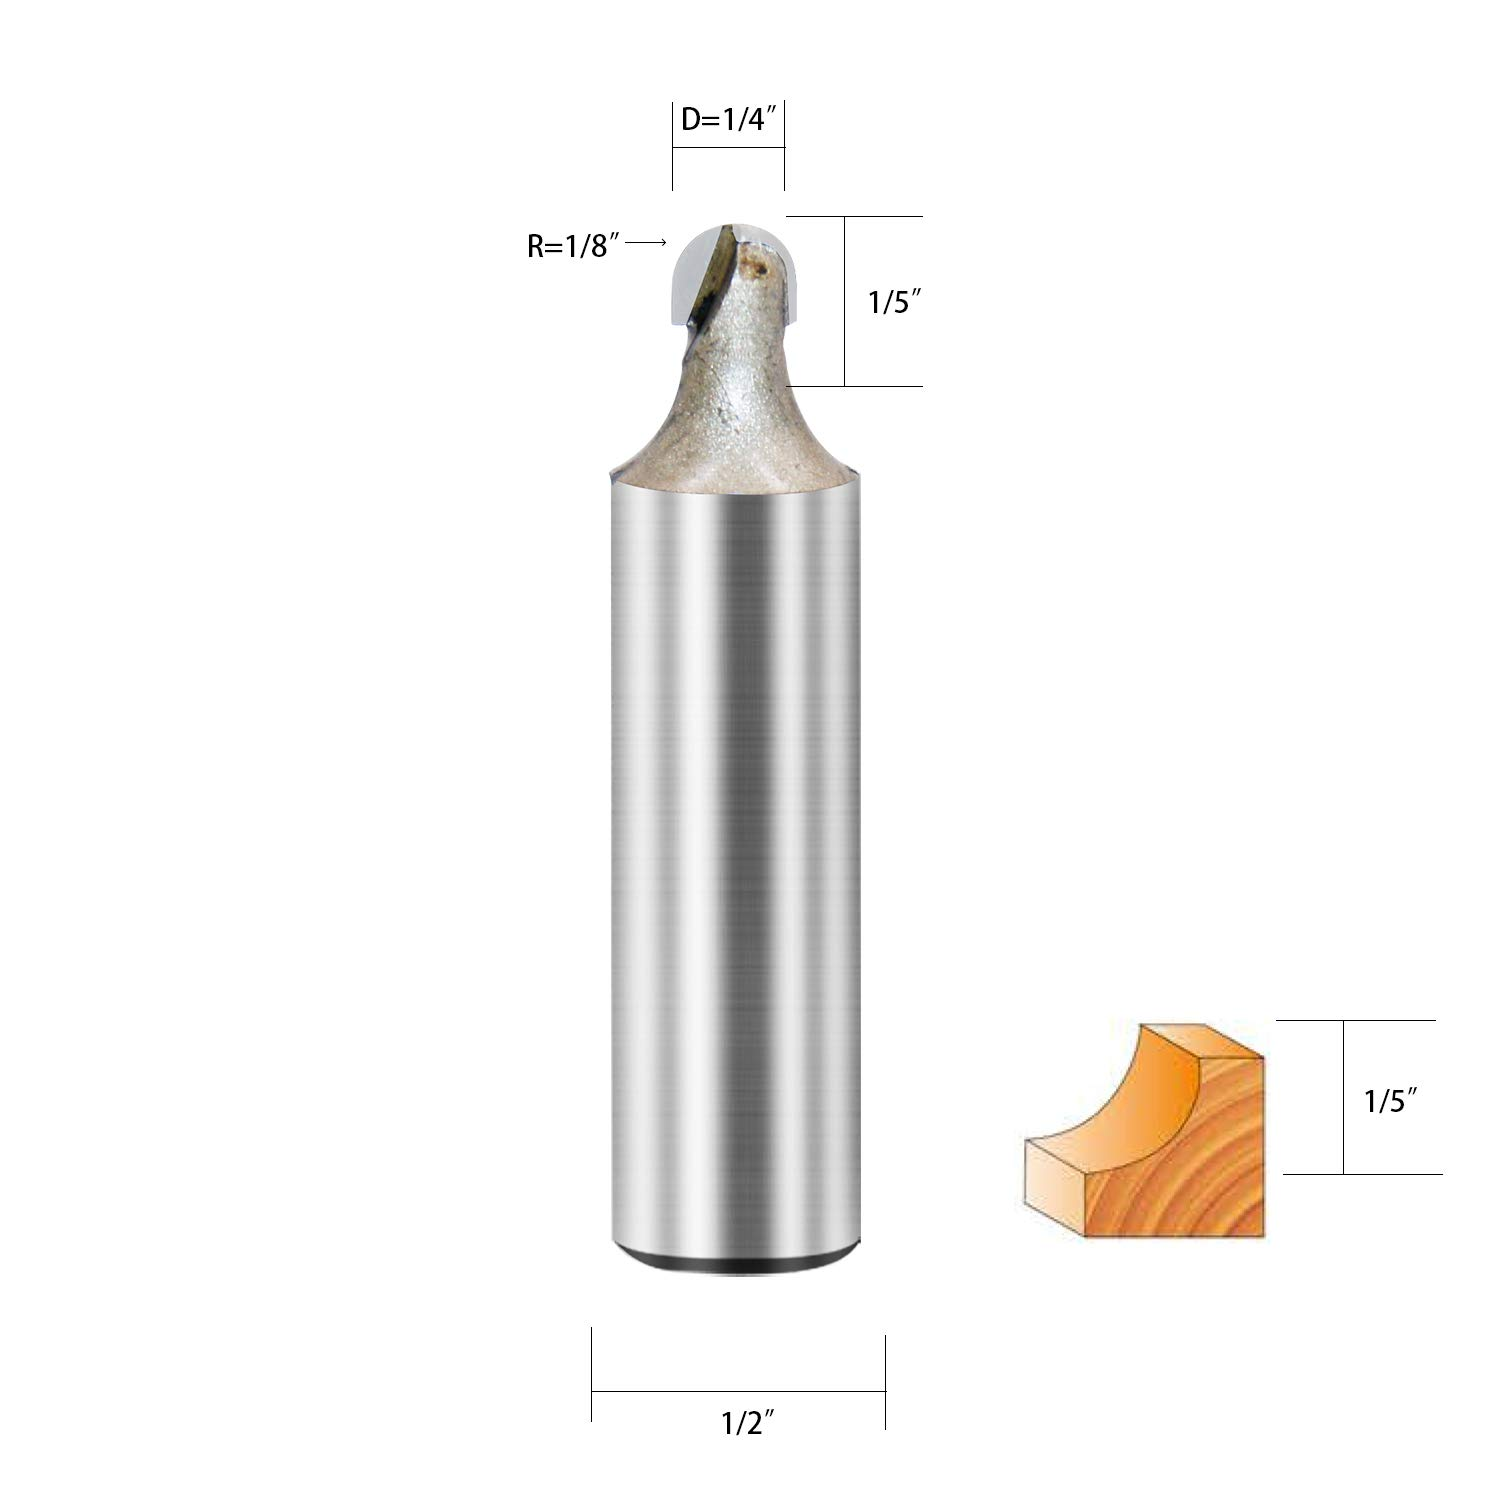 1//2X1-5//8 Core Box Router Bit Double Flute Round Nose Router Bit Carbide Tipped Woodworking Tool Round Groove Router Bit 13//16/'/' Radius x 1//2 inch Shank